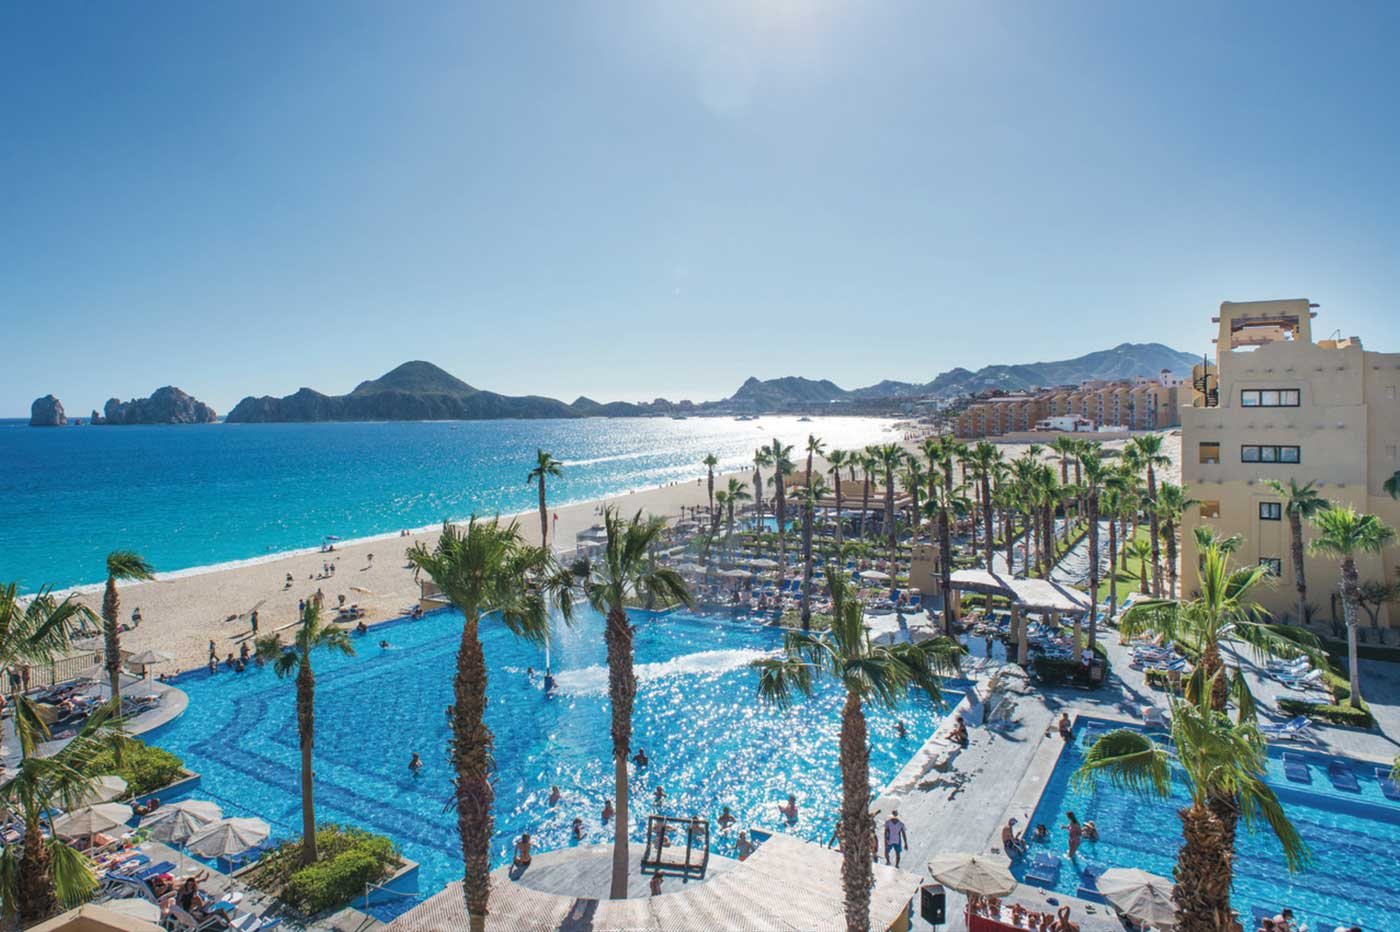 Spring Break Cabo San Lucas at RIU Santa Fe